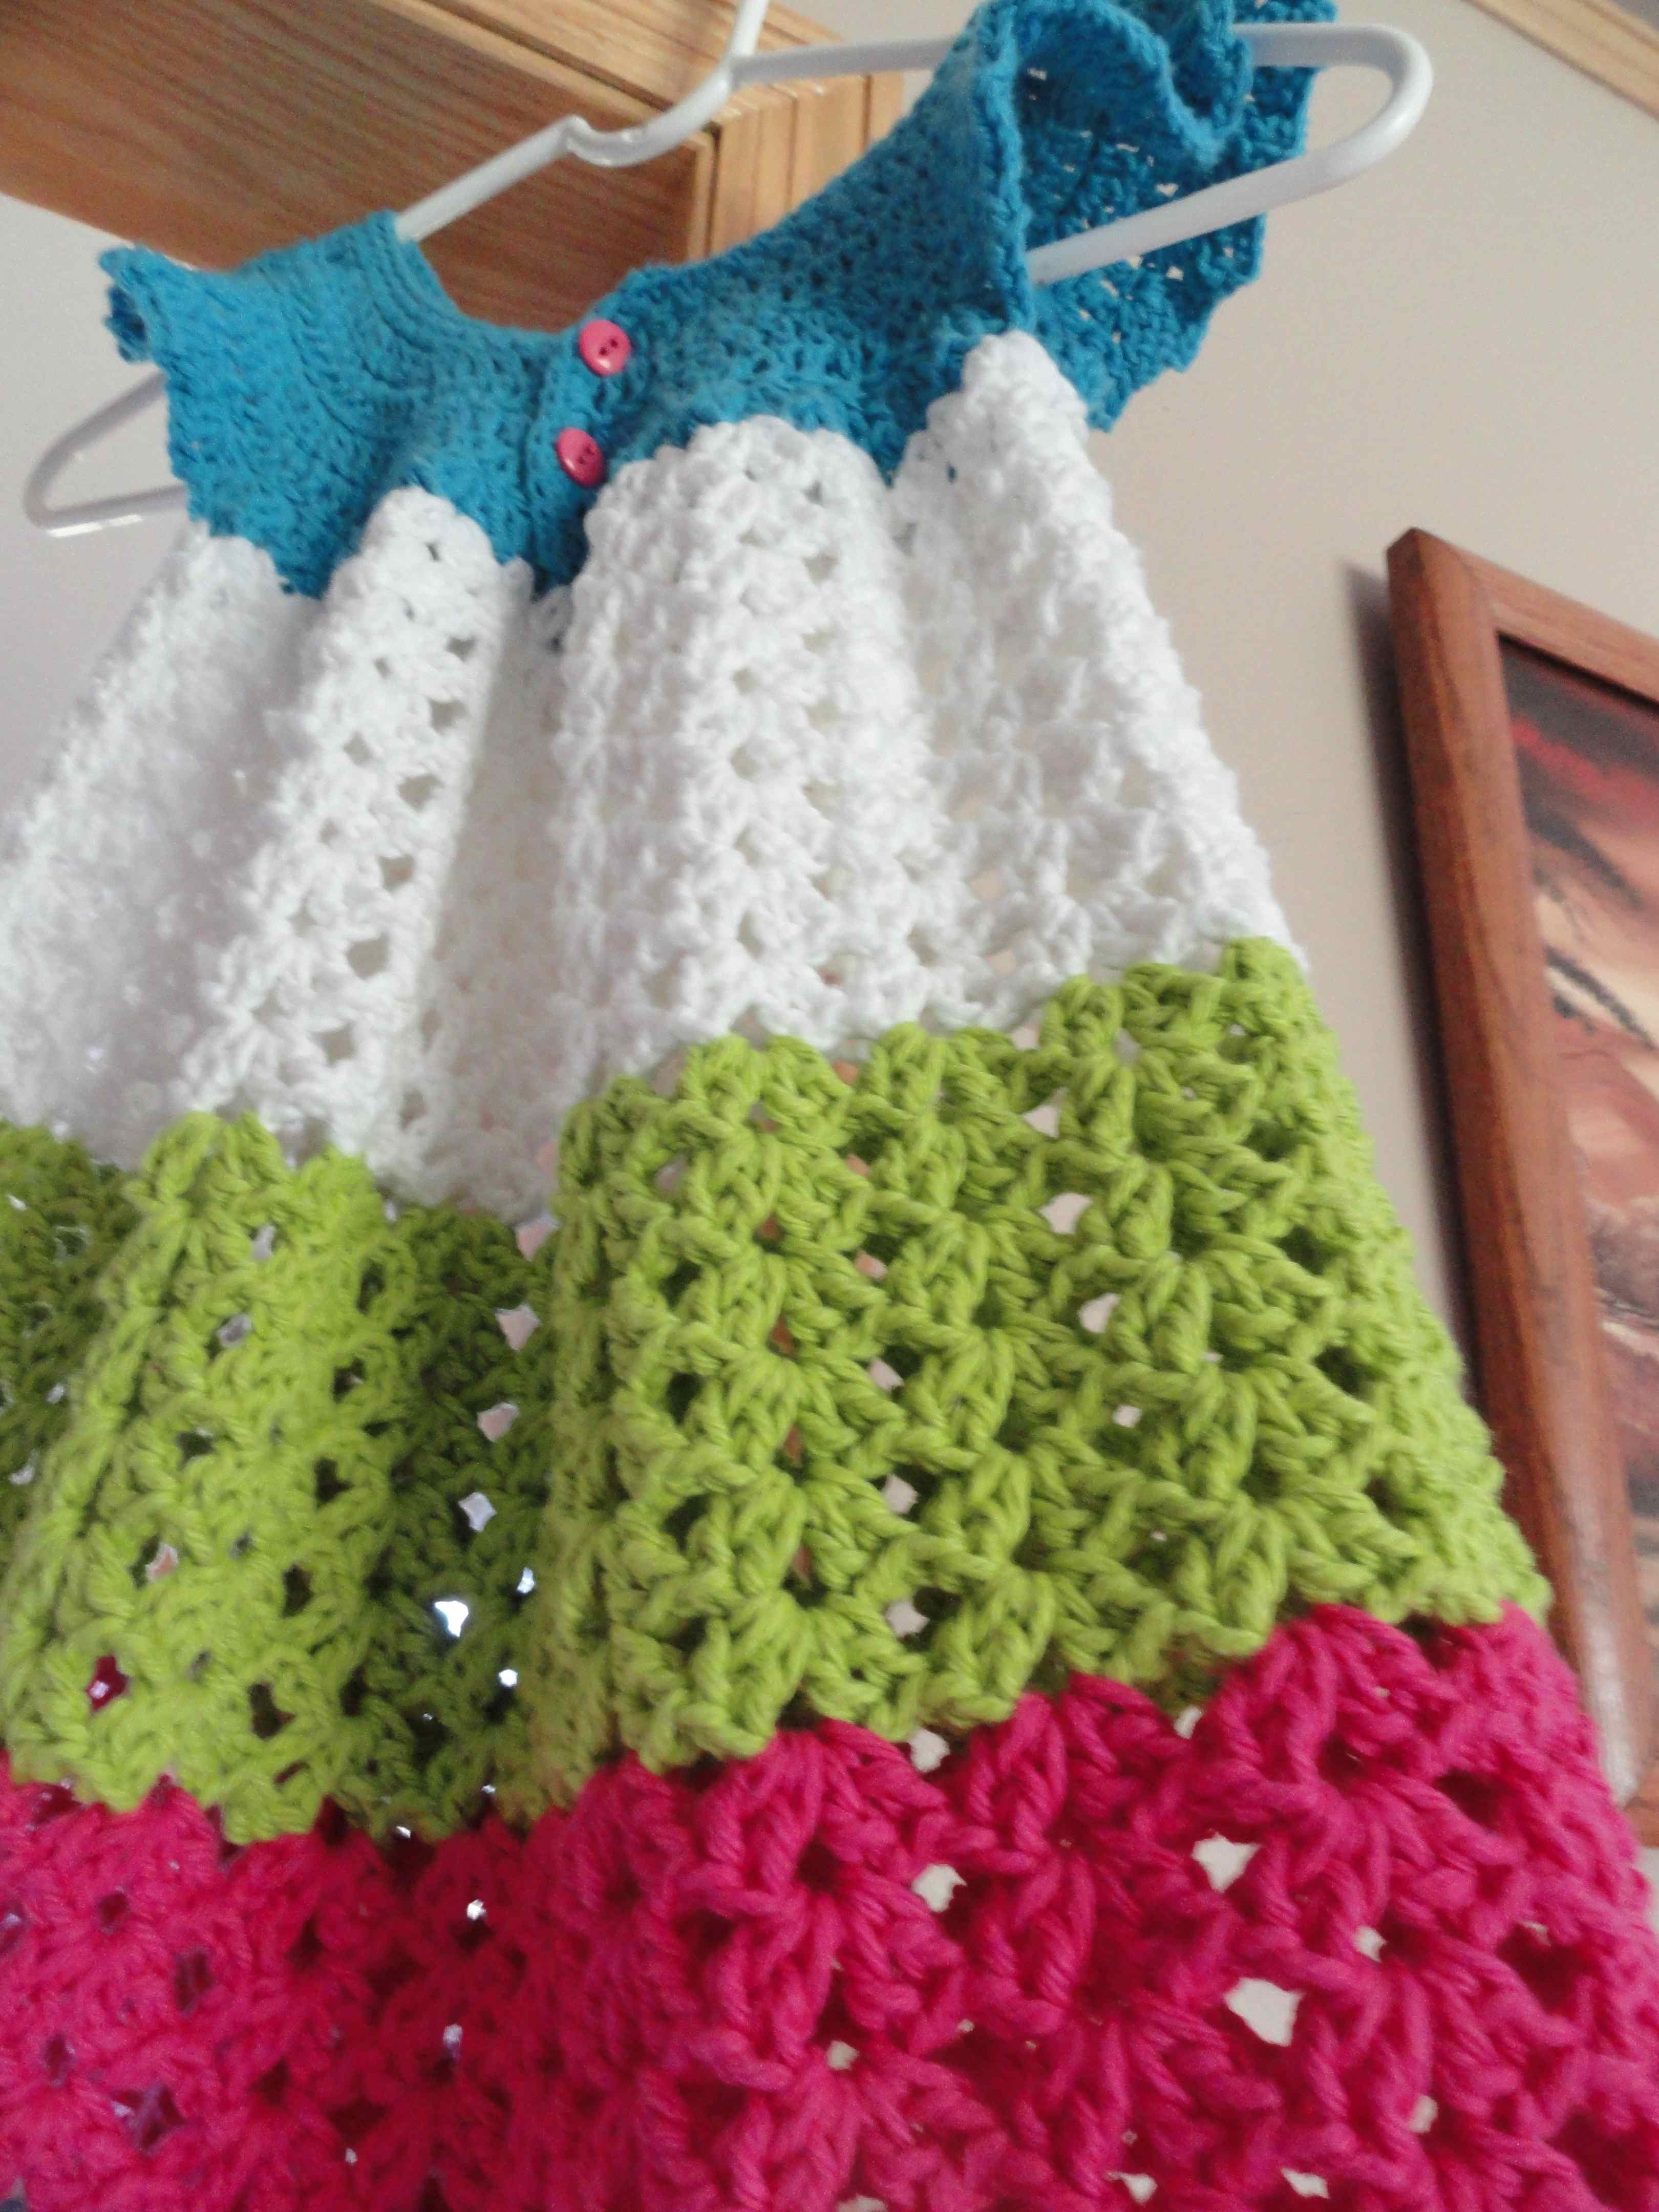 Free pattern for baby sandals to crochet dancox for 301 moved permanently free pattern for baby sandals to crochet crochet dress patterns little girls bankloansurffo Image collections